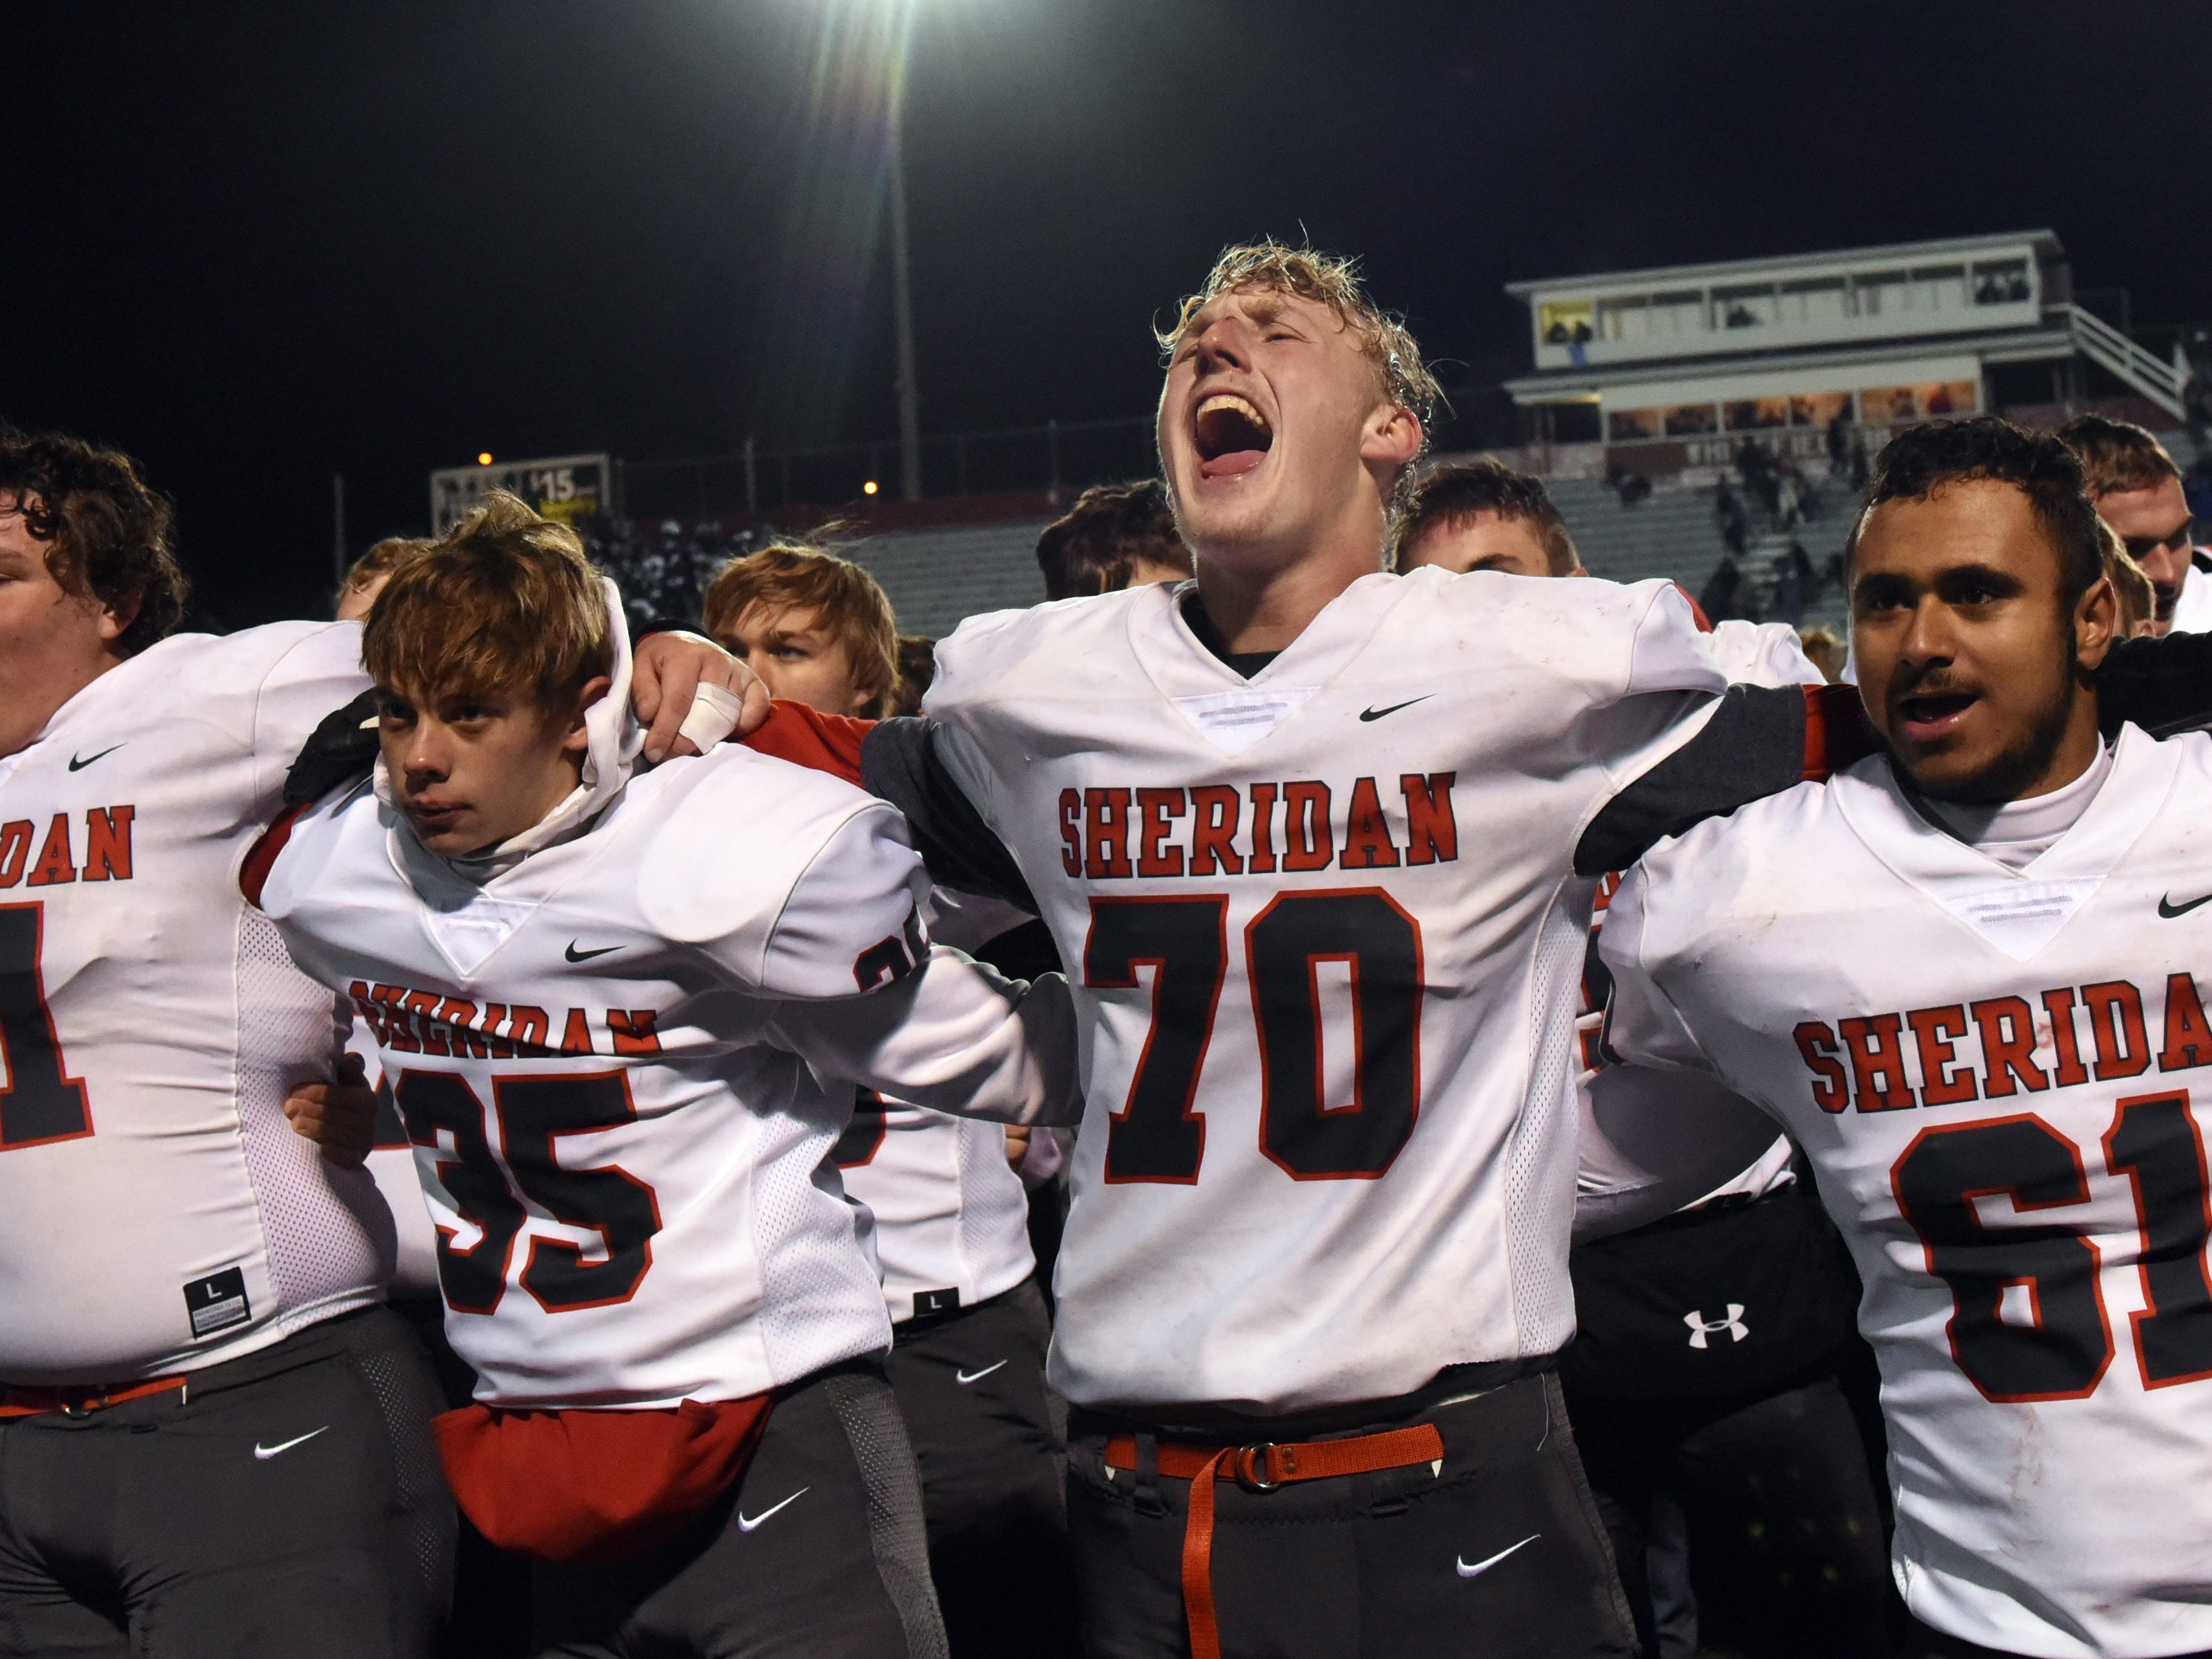 Sheridan senior Owen Loughman enthusiastically sings the schools alma mater after defeating Granville 20-7 in a Division III, Region 11 semifinal on Friday, Nov. 9, 2018 at White Field in Newark.